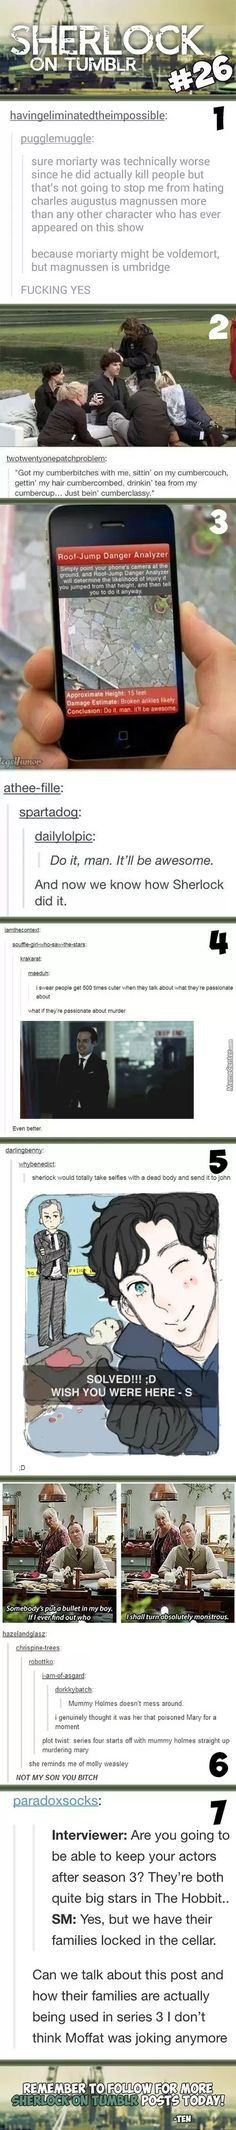 Sherlock On Tumblr #26<<< The last one...